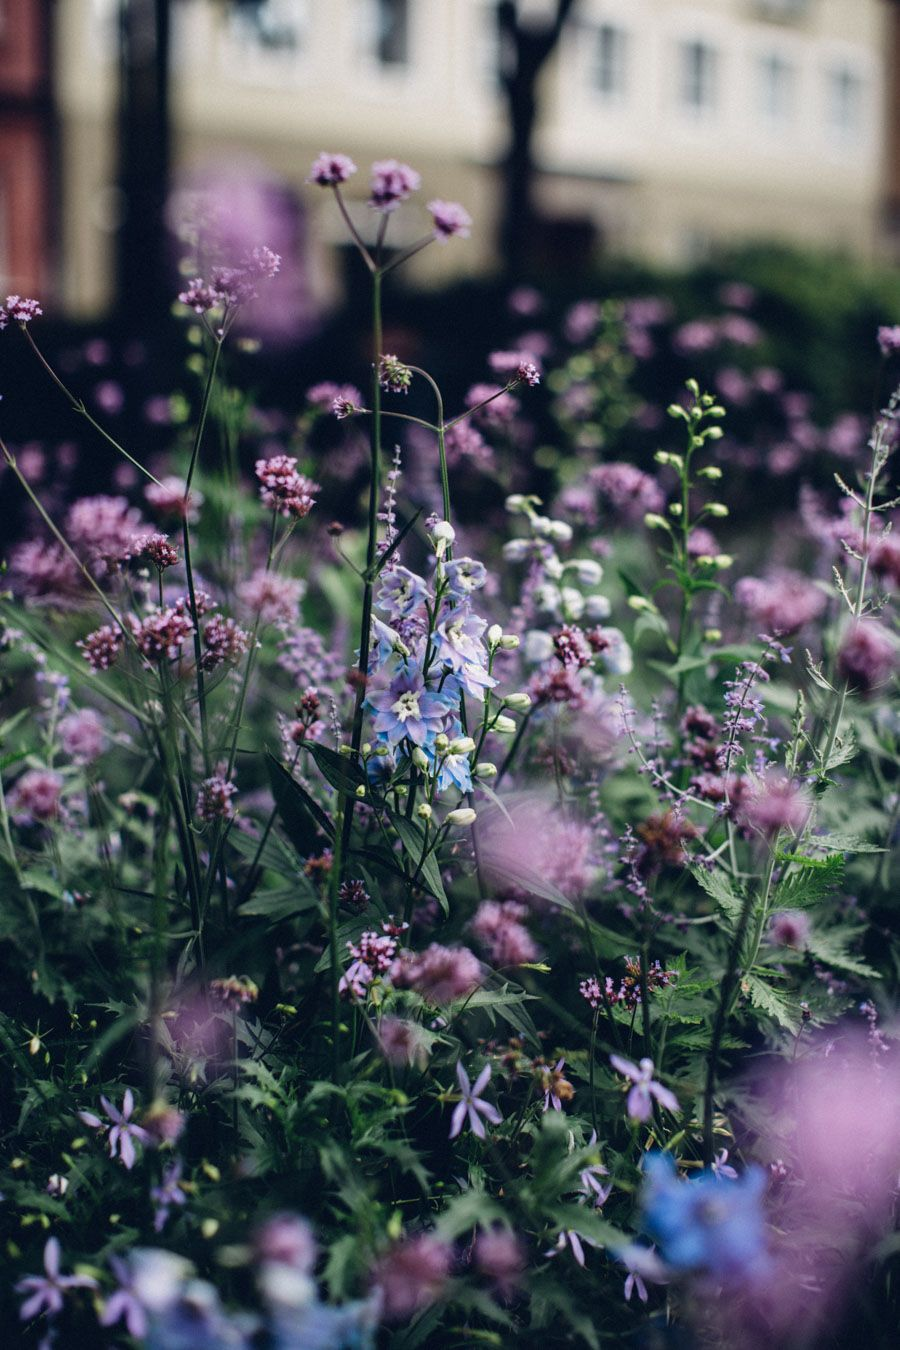 Pin by marcavage on flowers pinterest gardens flowers and plants